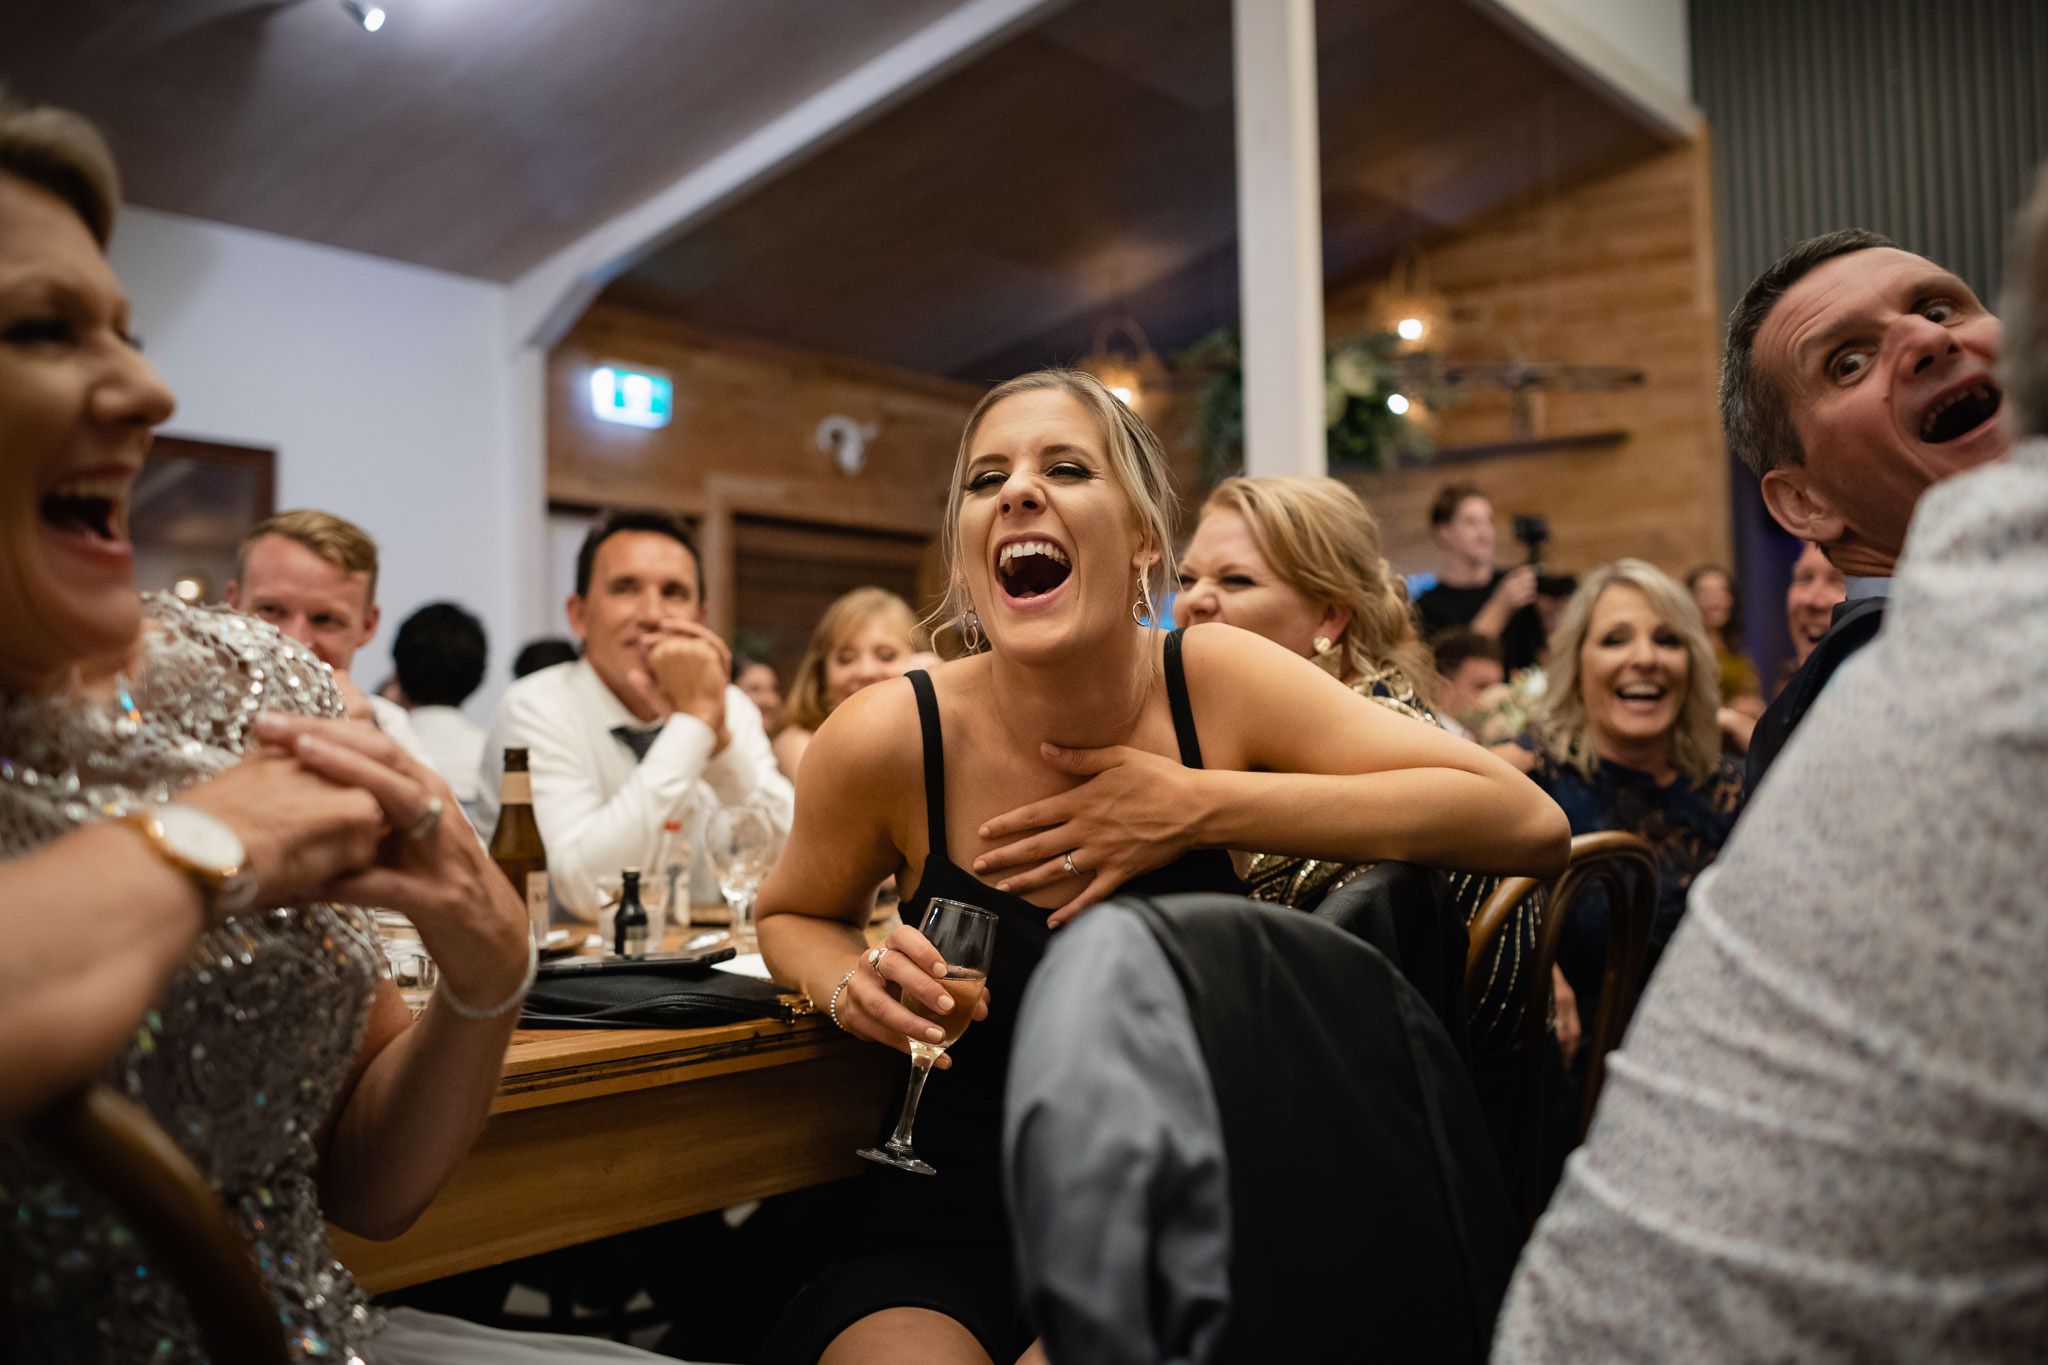 Wedding guests laughing during funny wedding speeches at wedding reception